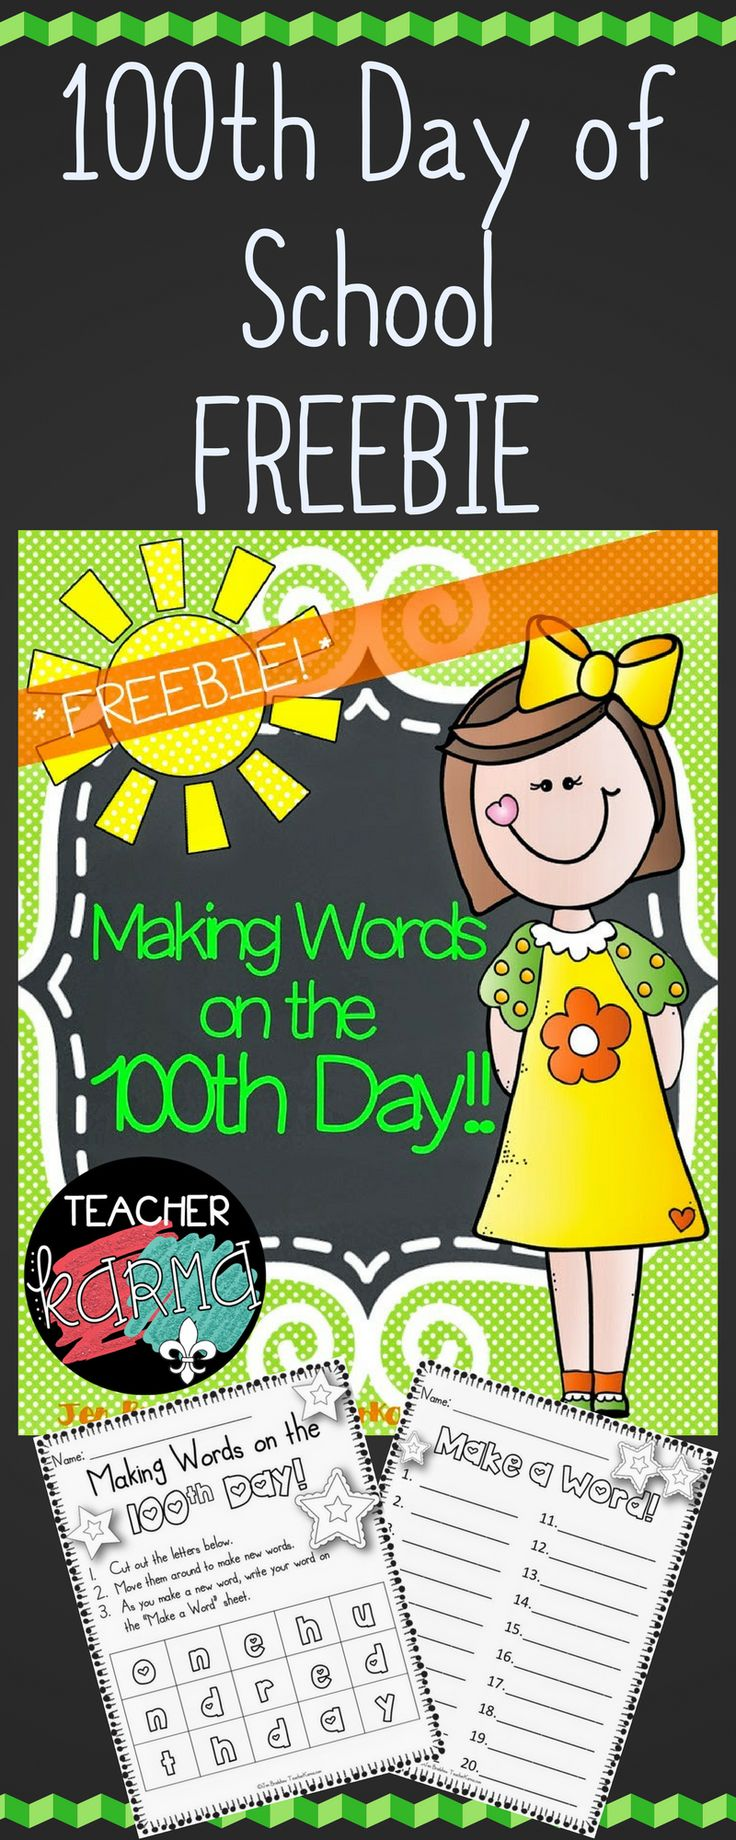 100th Day of School FREEBIE - Making Words on the 100th Day of School - Reading resource - TeacherKarma.com